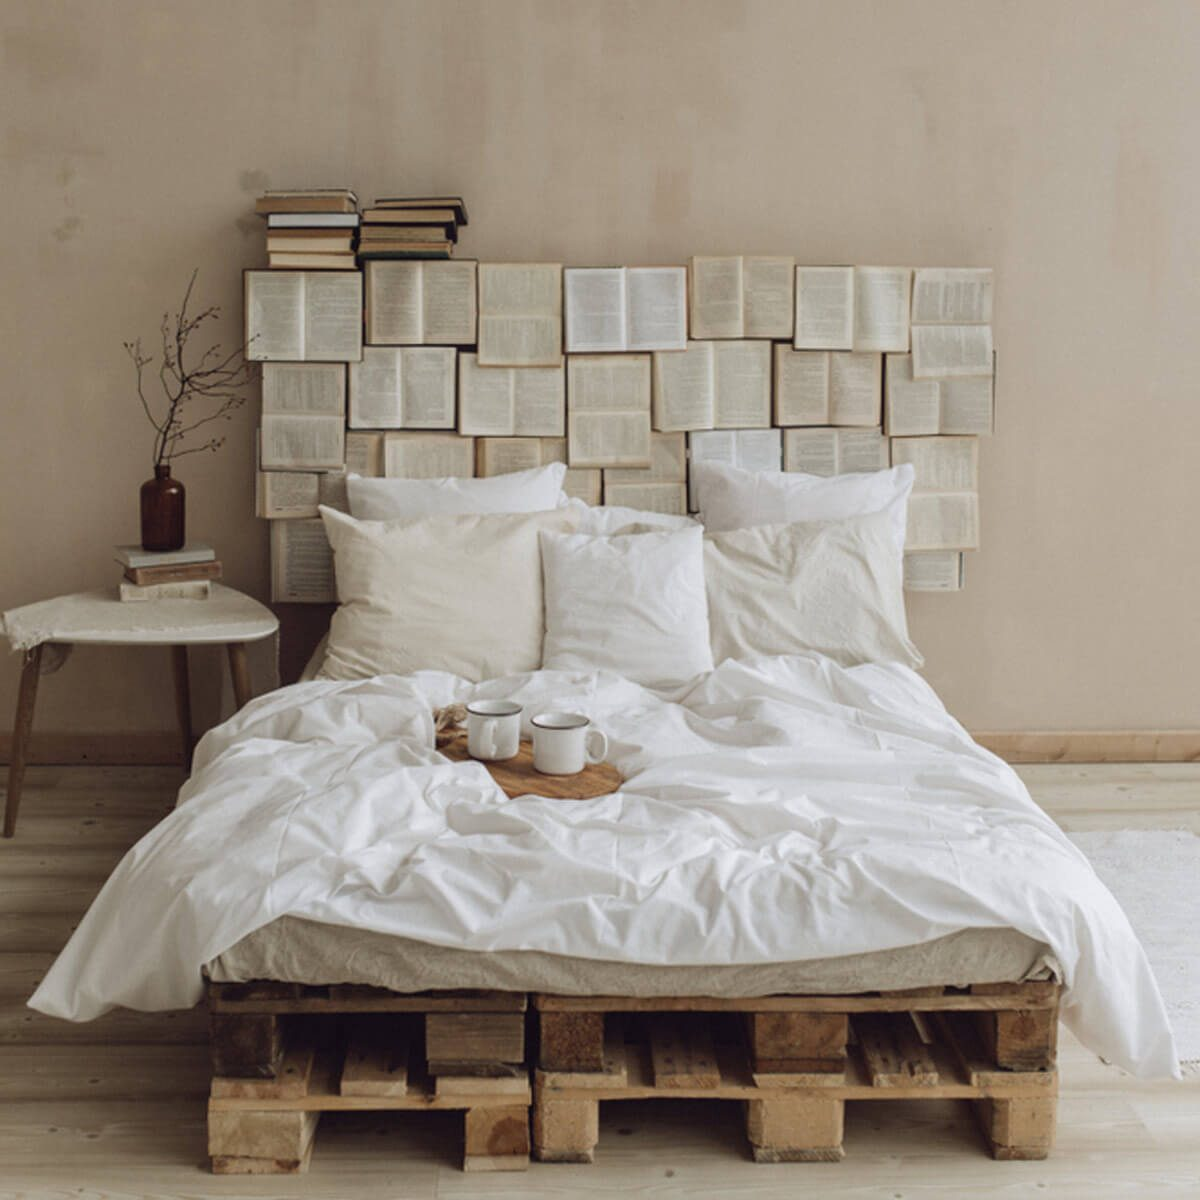 Construct an Affordable Pallet Bed books headboard